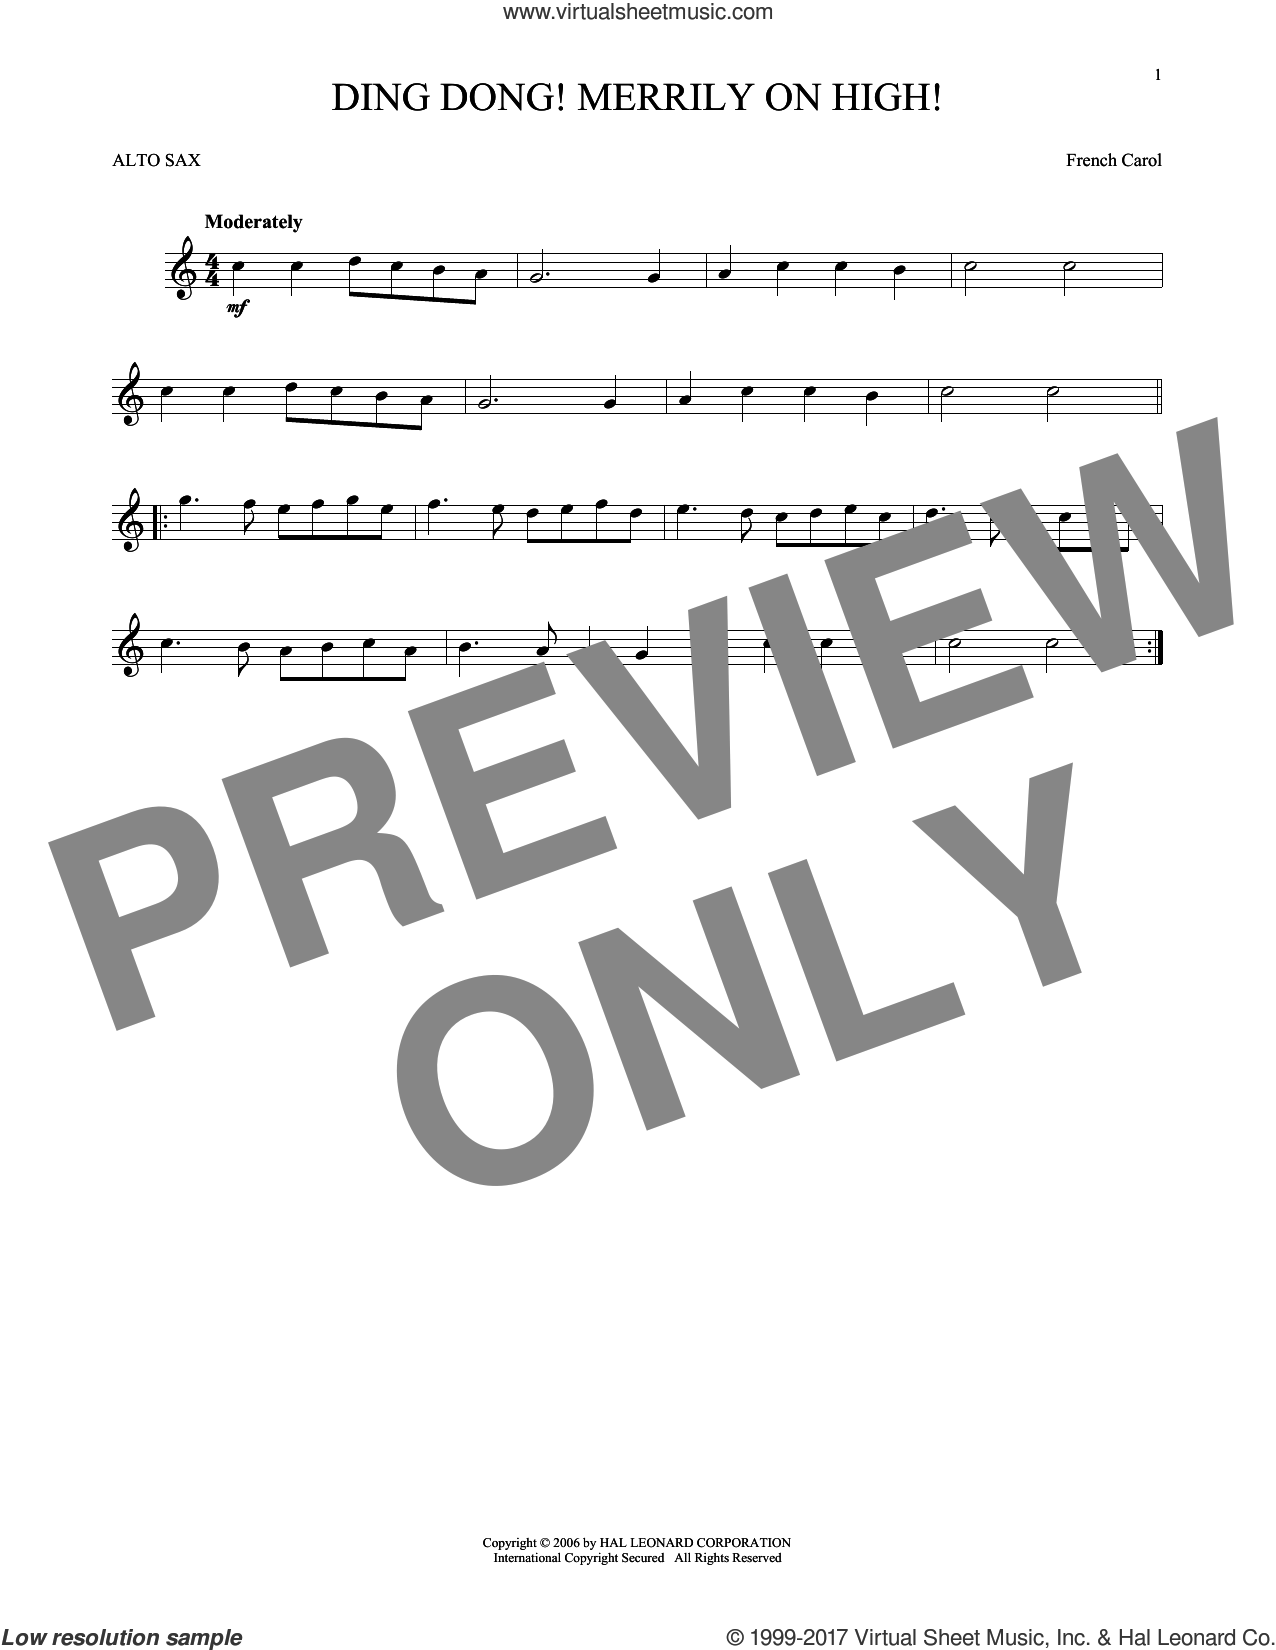 Ding Dong! Merrily On High! sheet music for alto saxophone solo, intermediate skill level